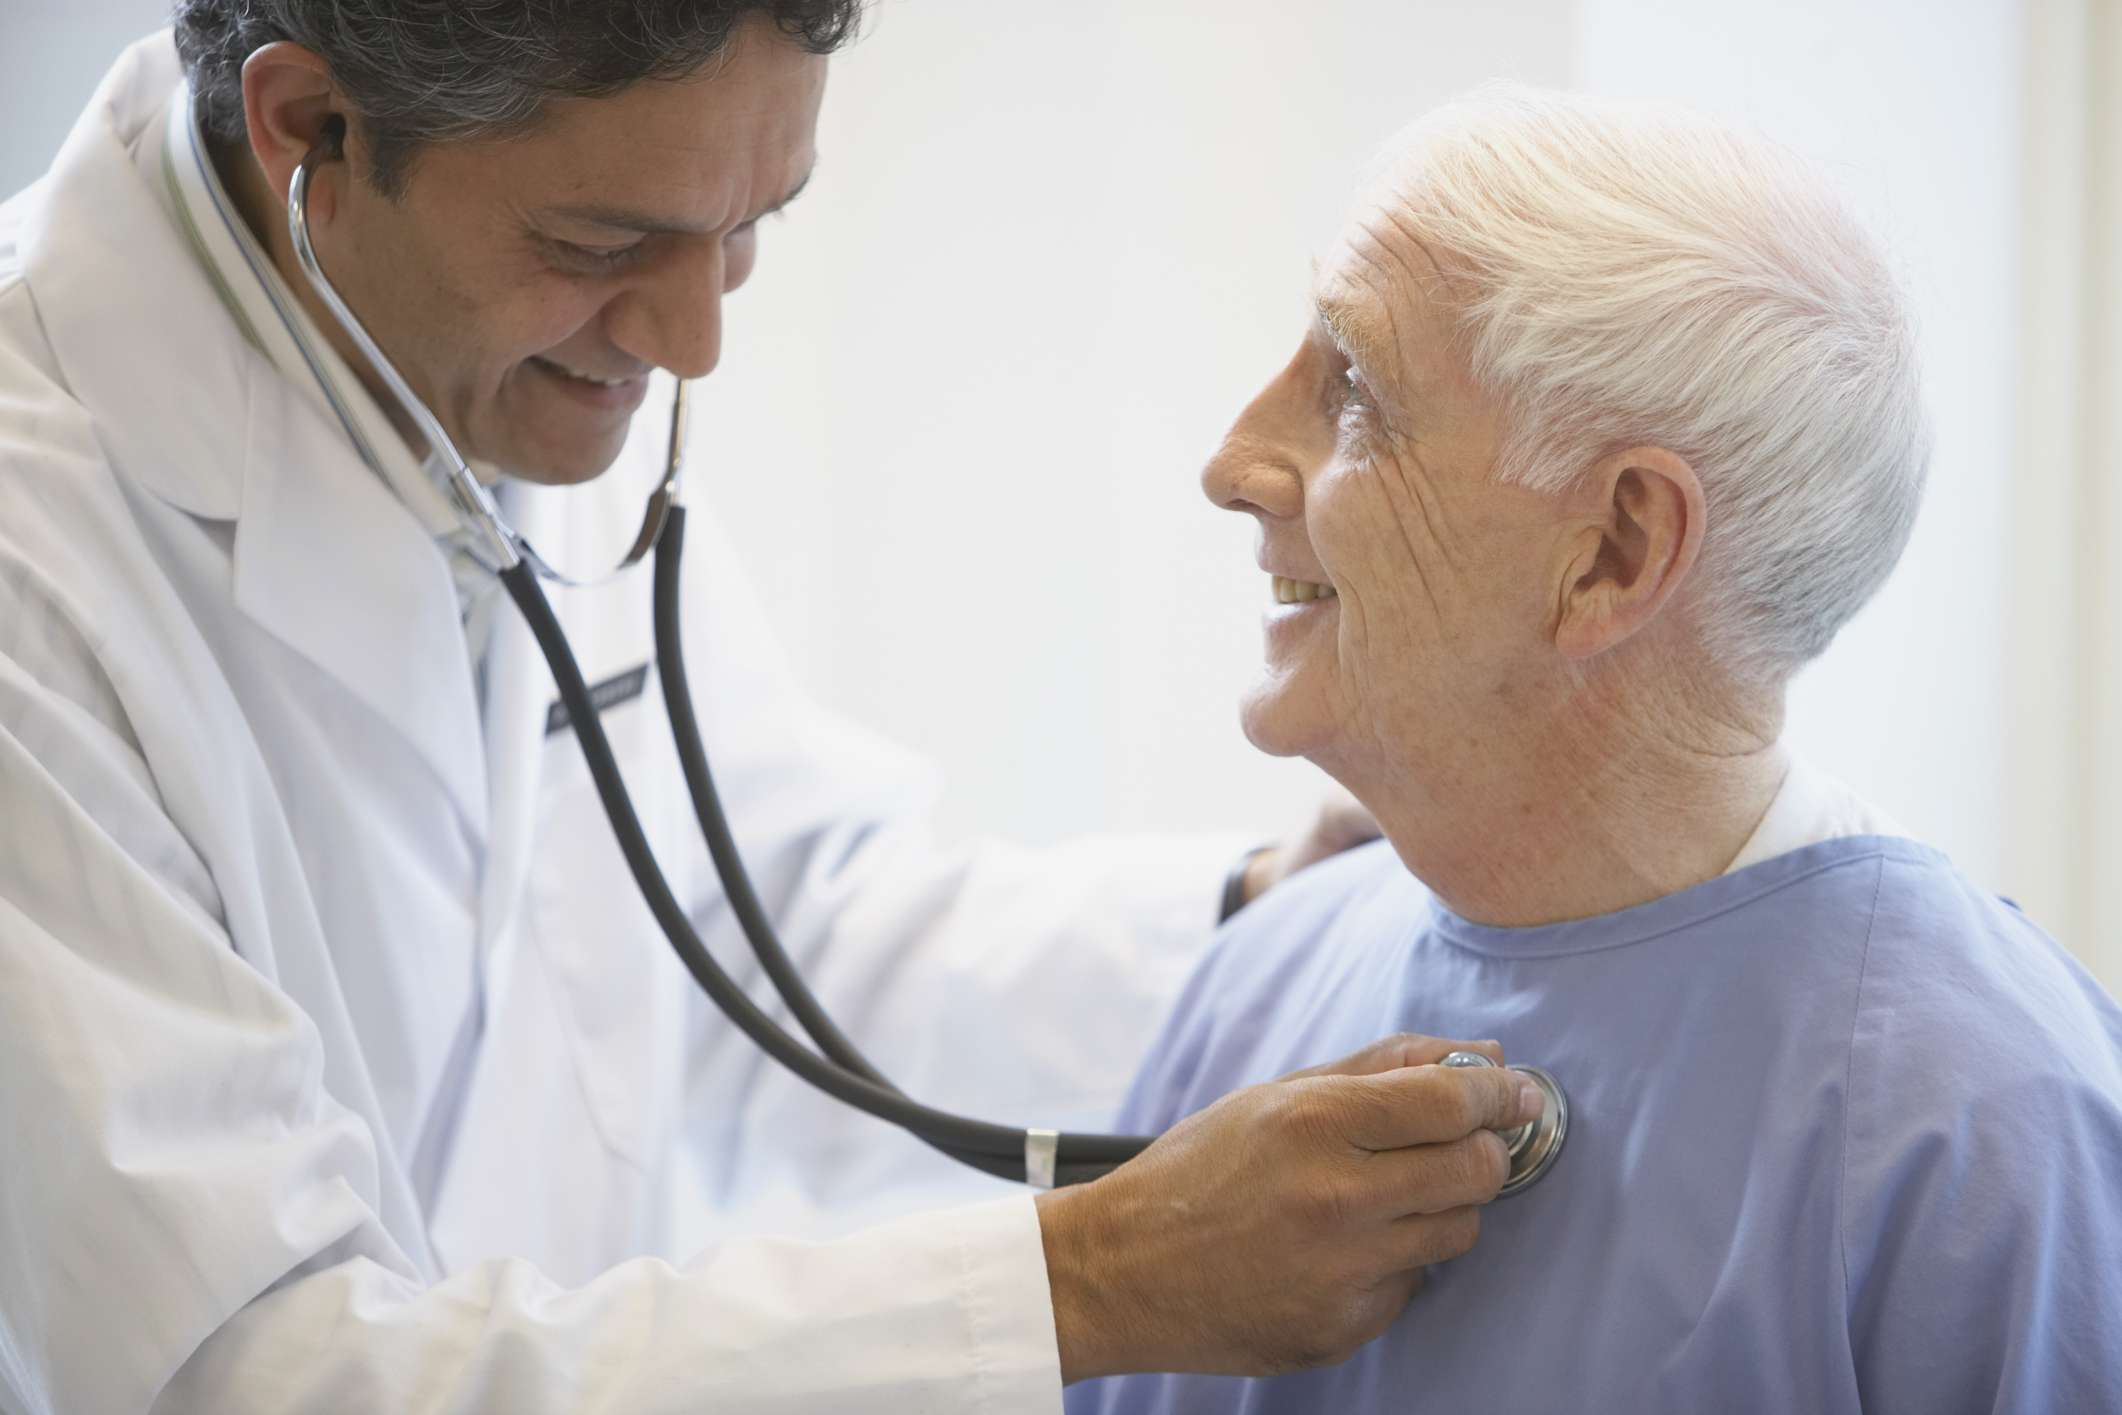 A doctor listening to the heartbeat of an older male patient